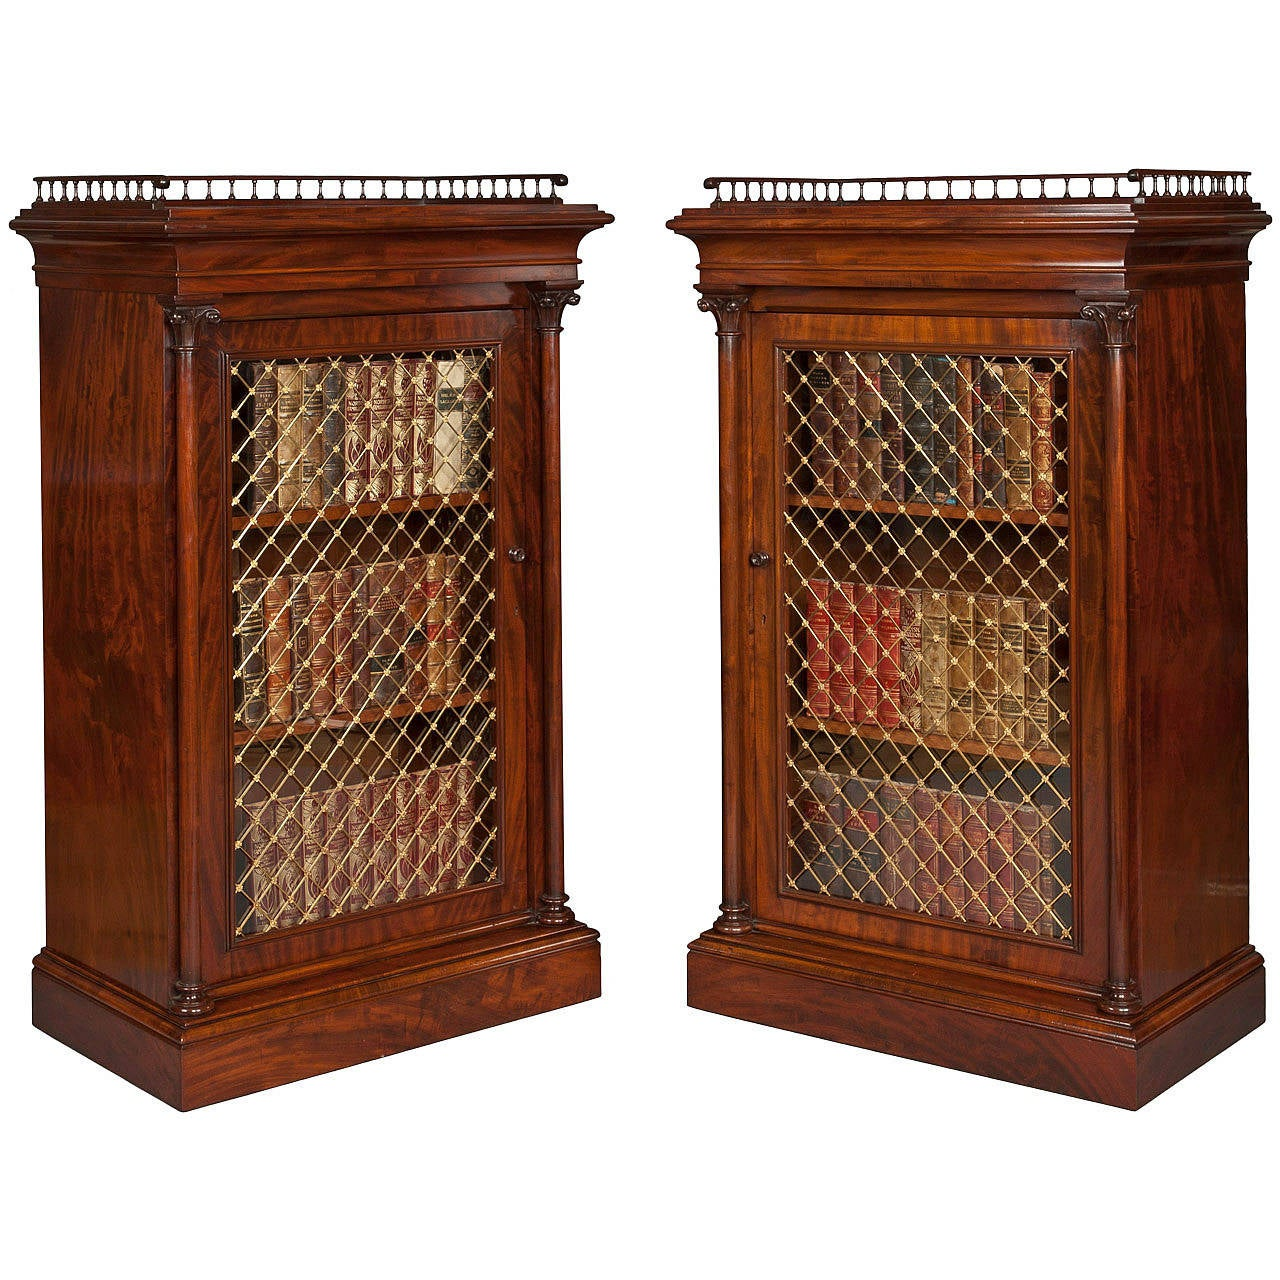 Pair of English Georgian Period Library Cabinets of Mahogany and Brass